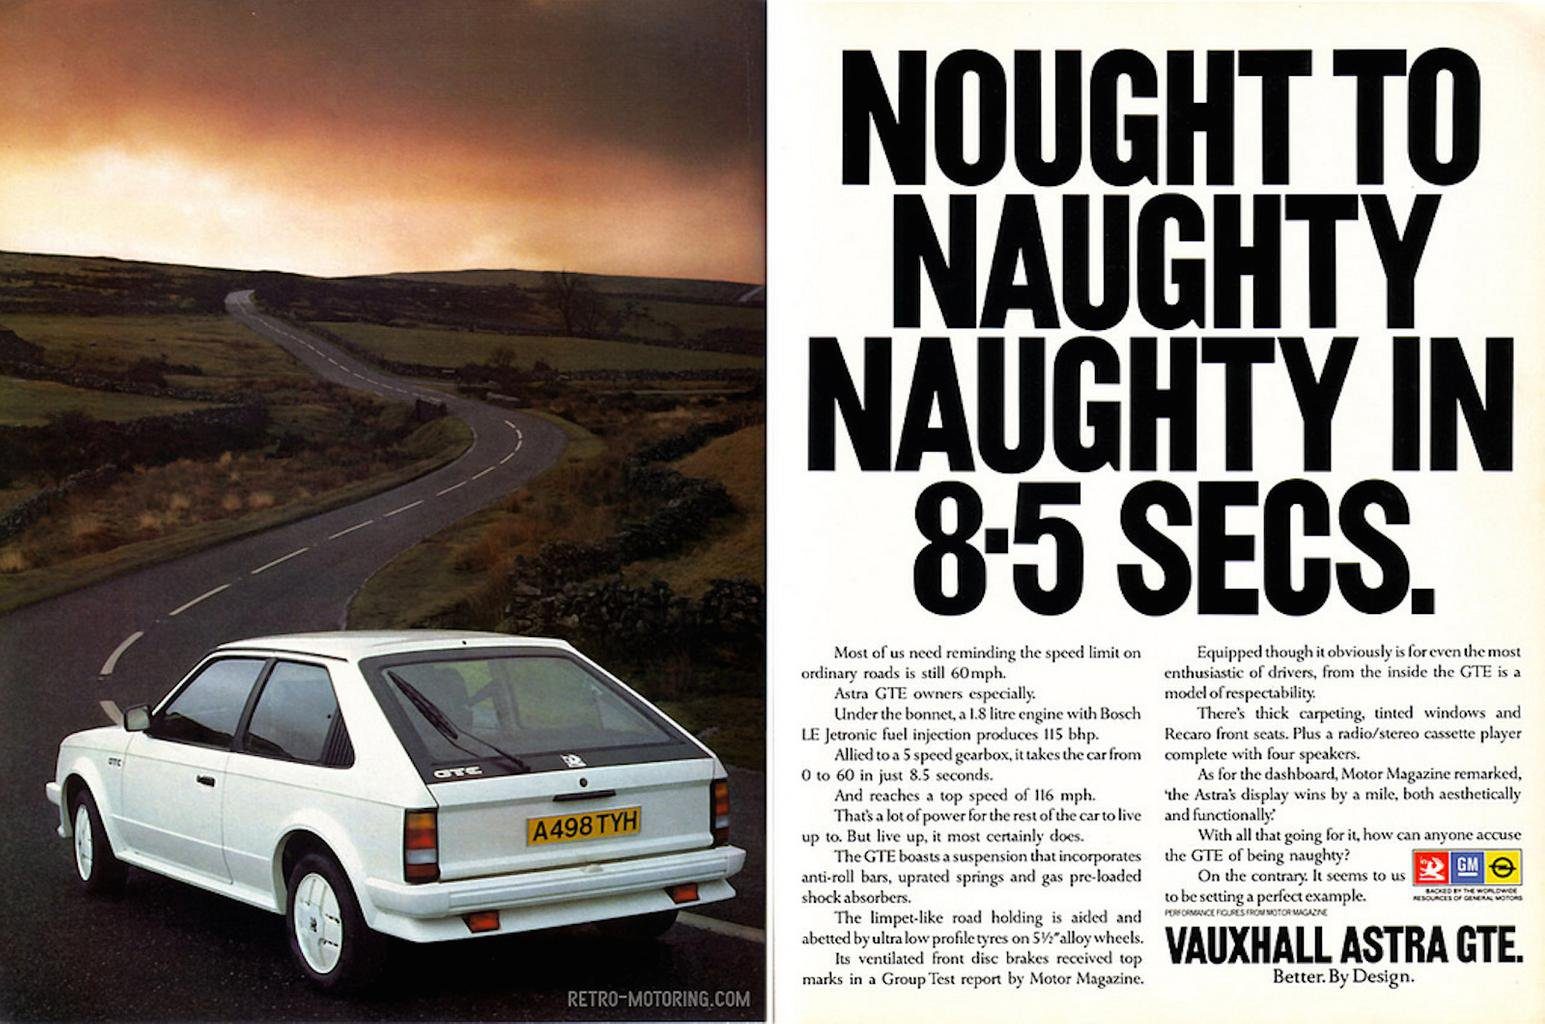 Vauxhall Astra GTE – Rewind Wednesday